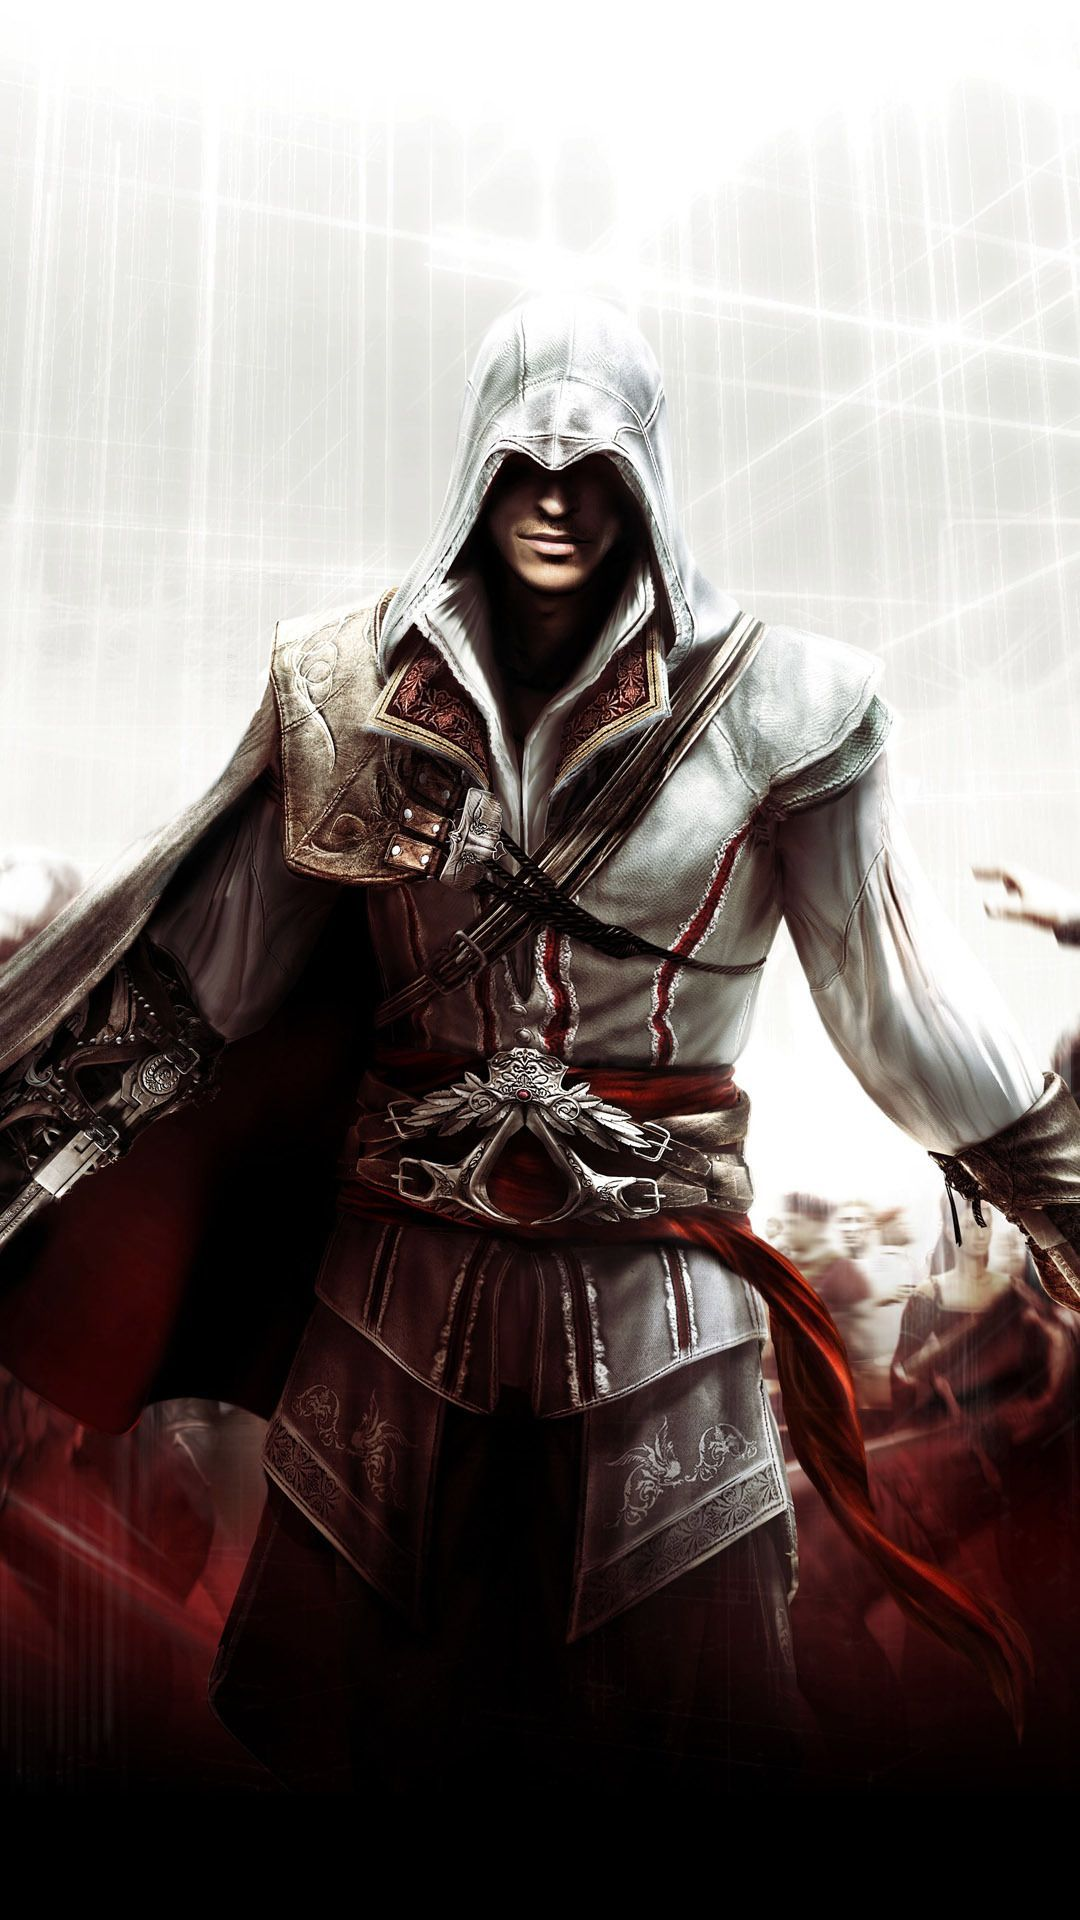 Assassins Creed Background Hd Wallpaper Hupages Download